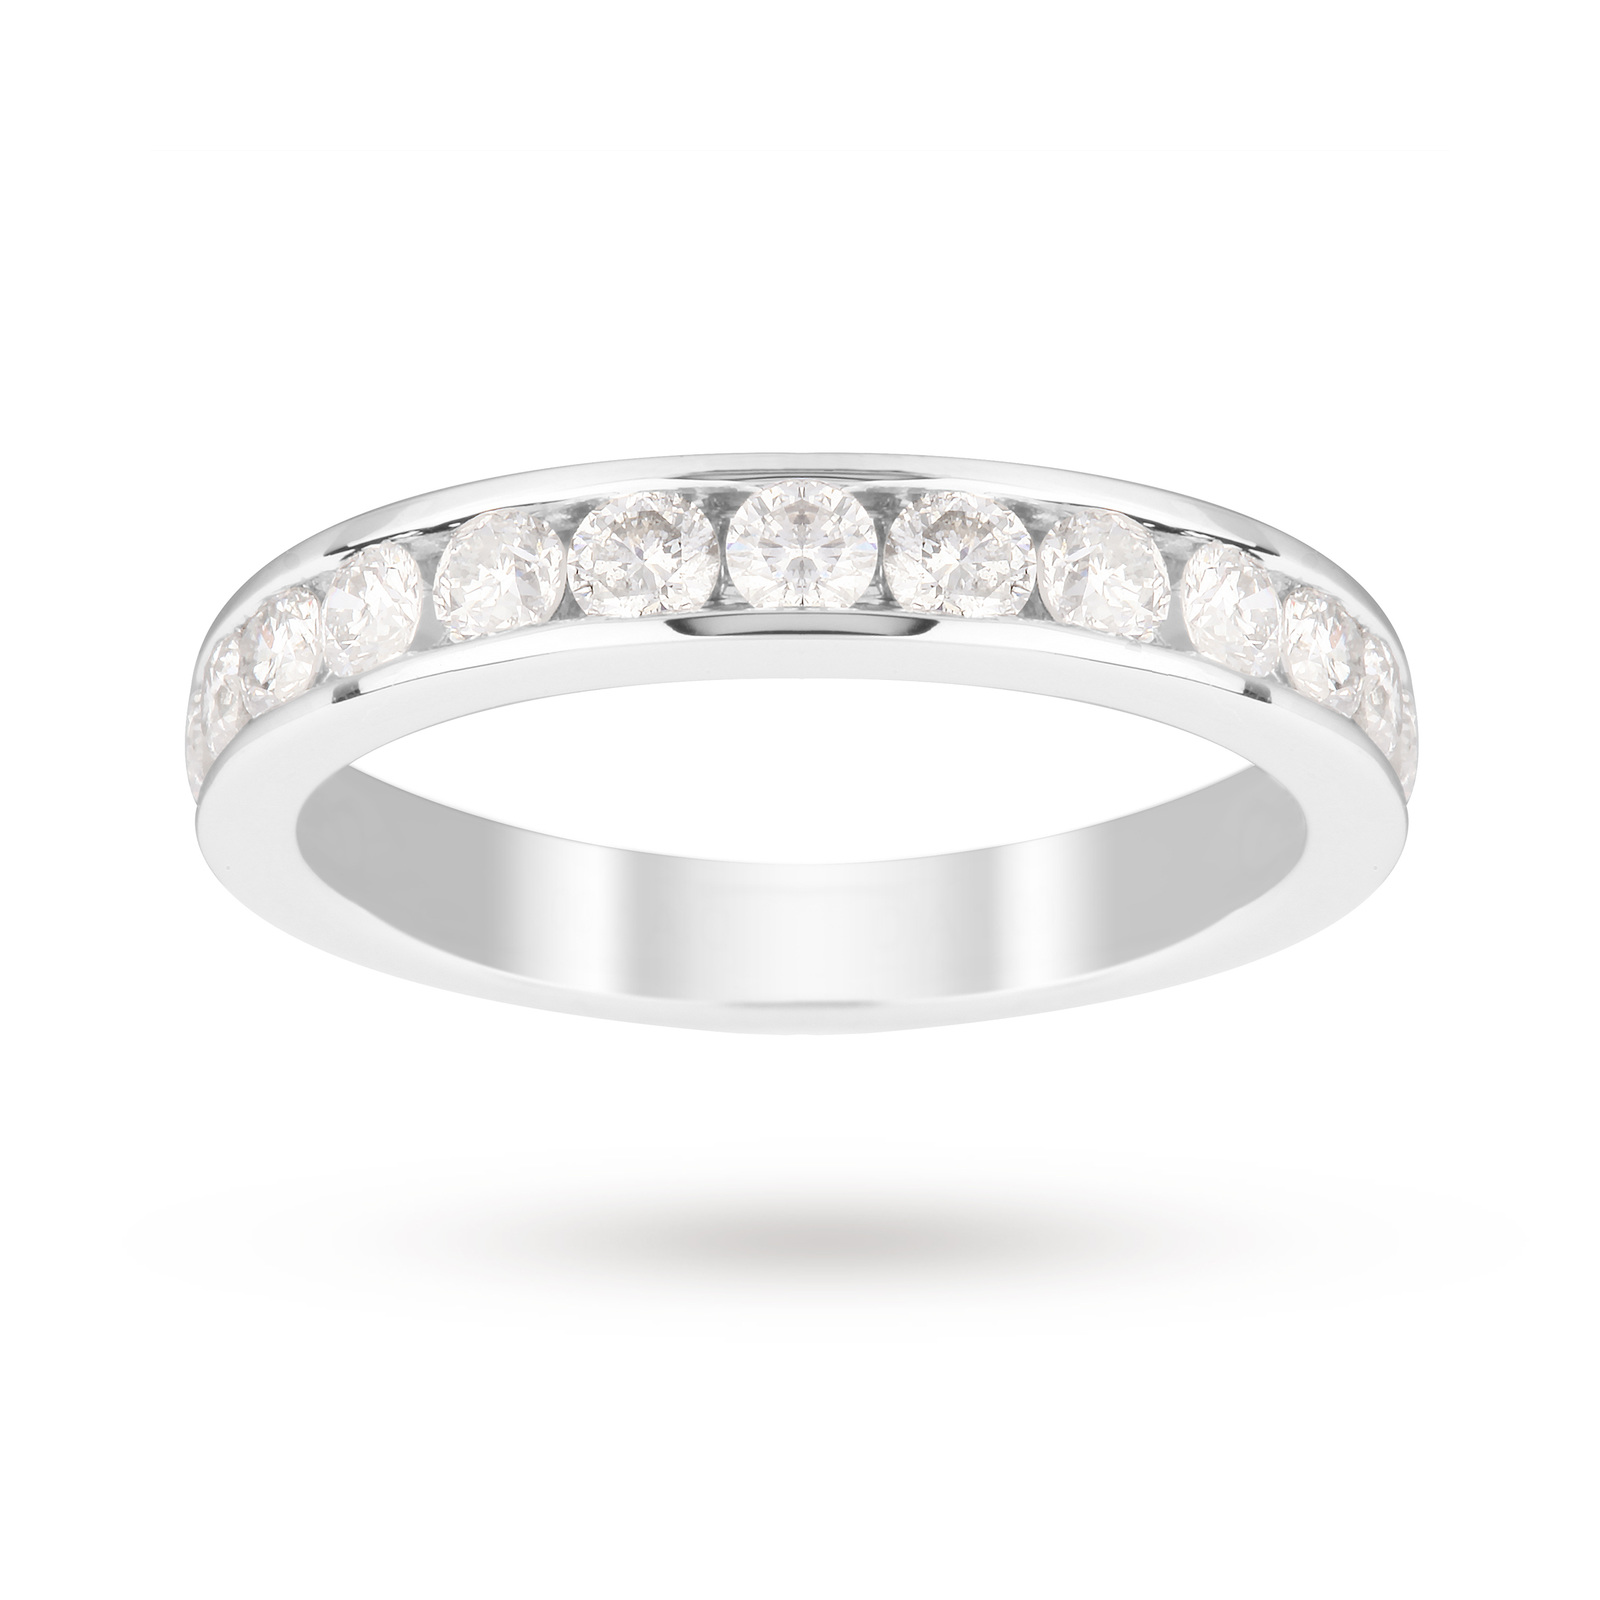 18ct White Gold 1.00 Carat Eternity Ring - Ring Size F